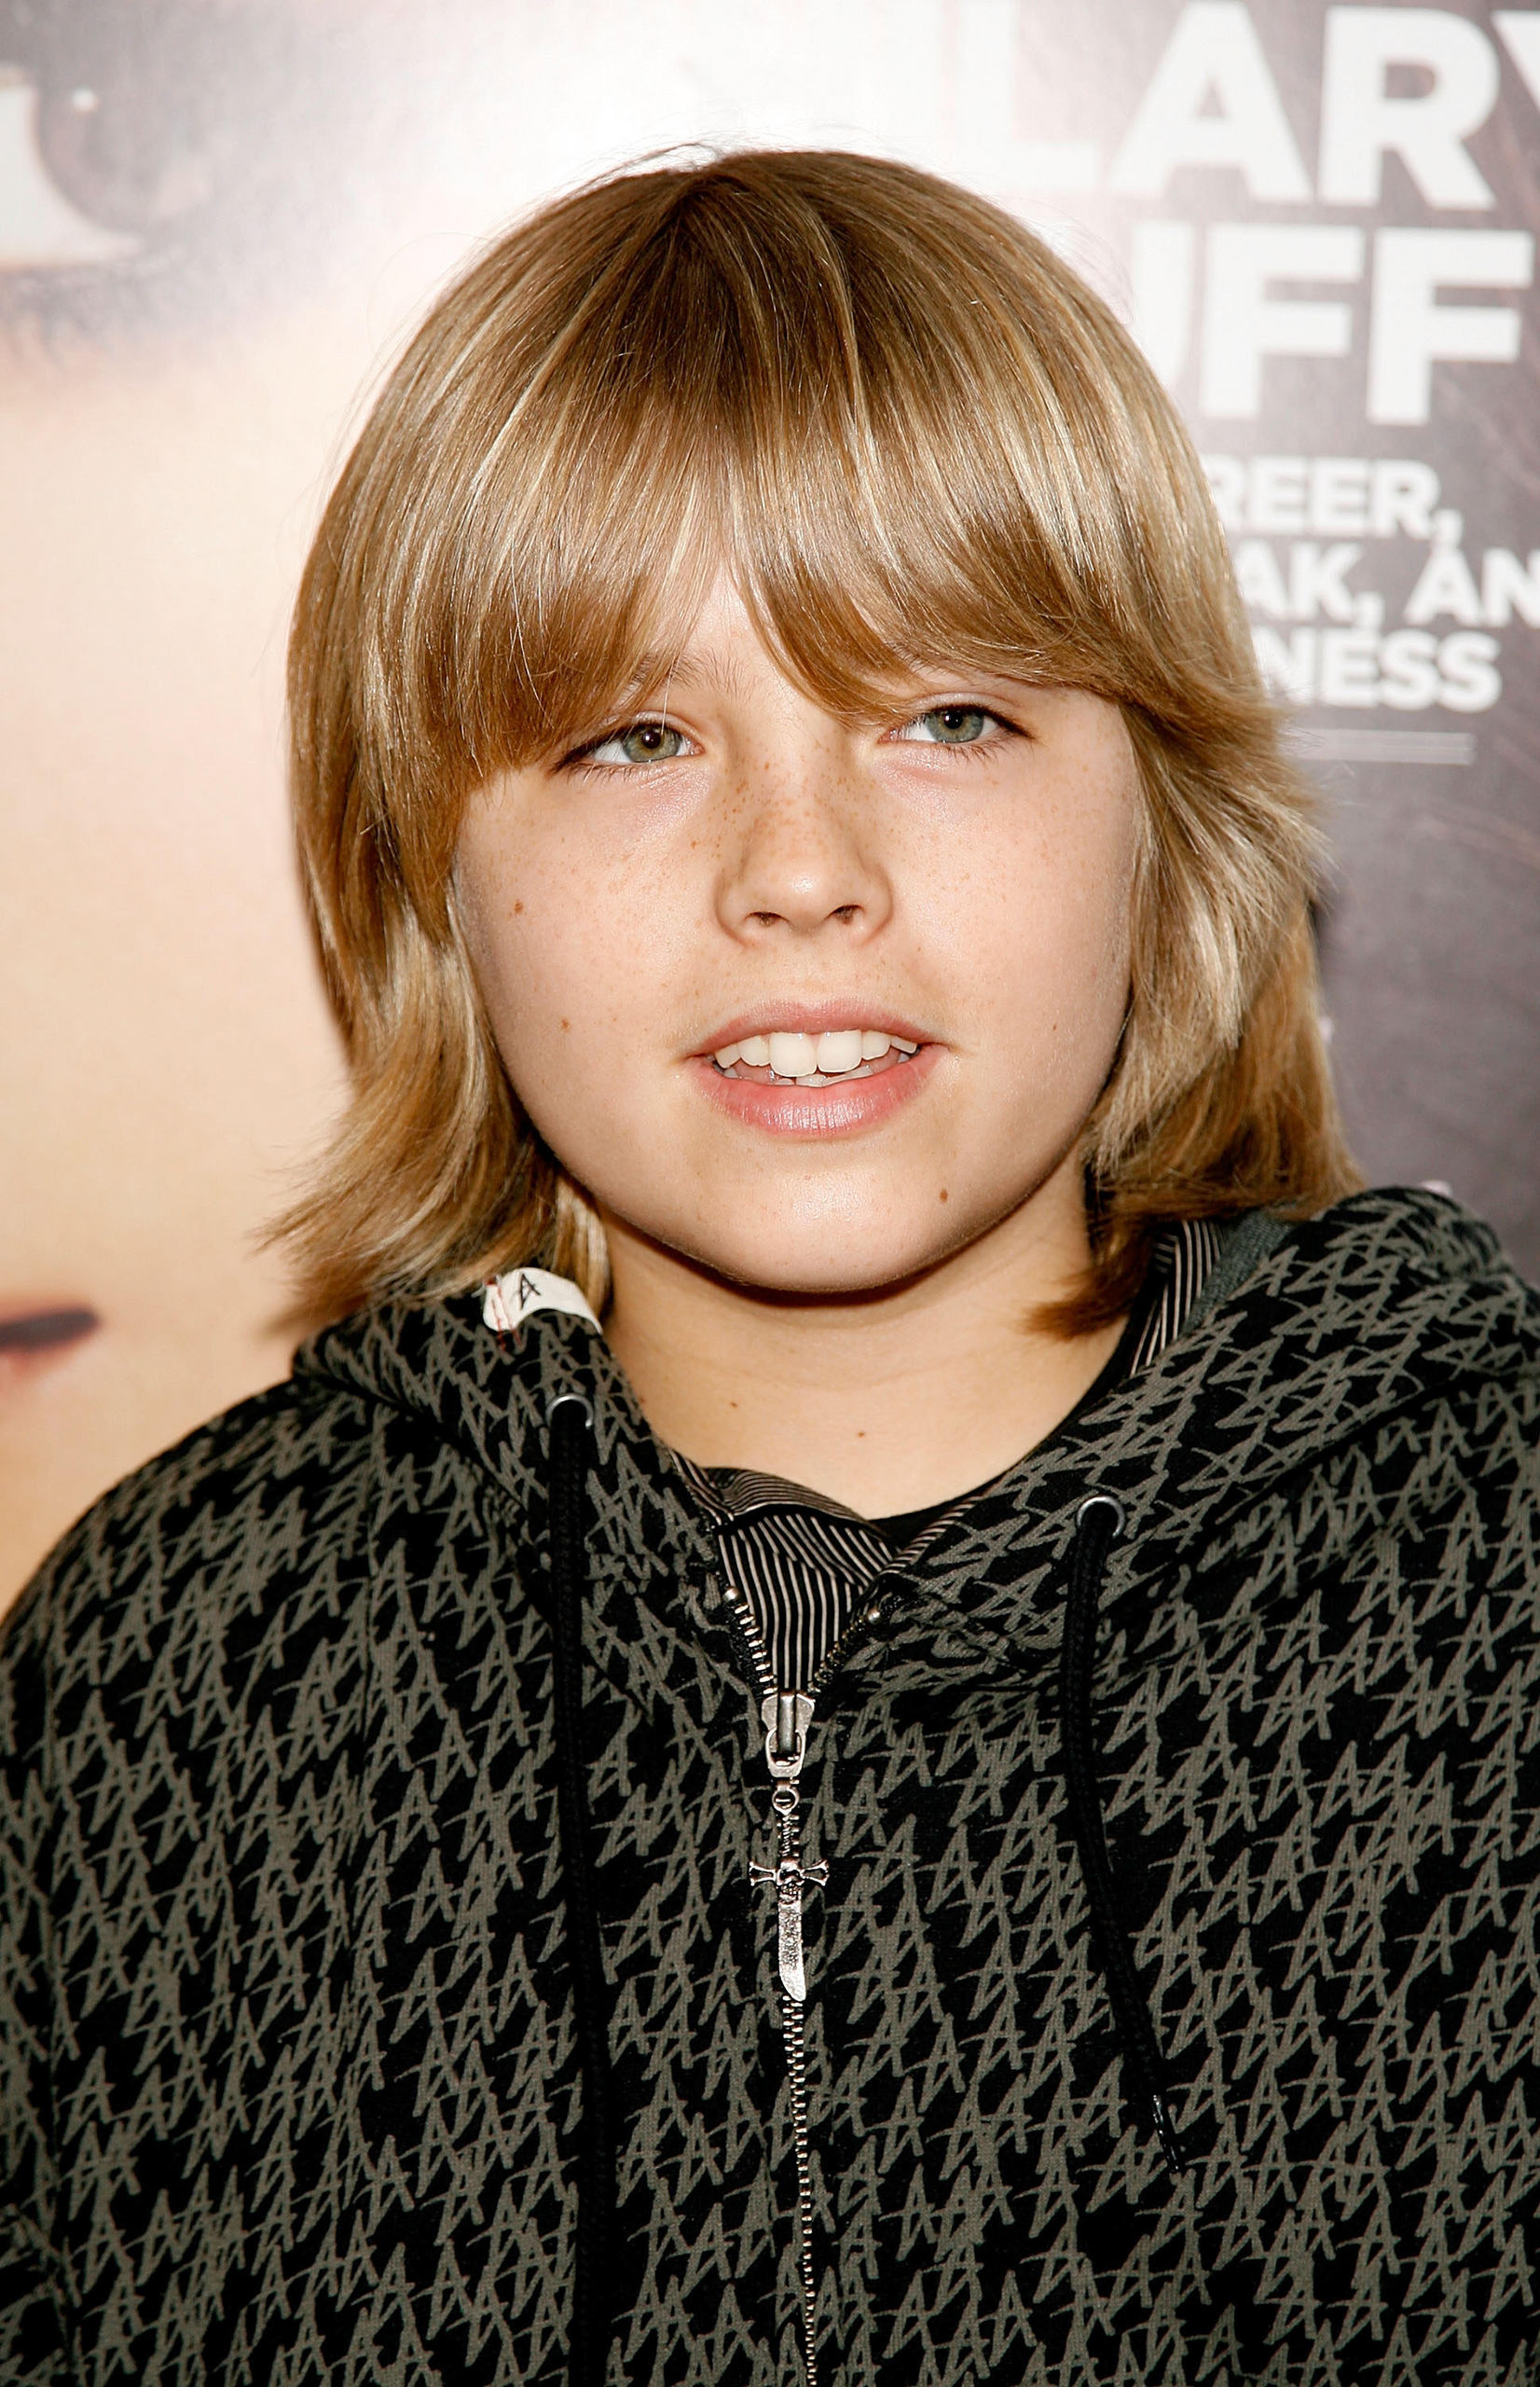 http://images5.fanpop.com/image/photos/30900000/Cole-Dylan-Sprouse-The-2007-Hollywood-Life-Magazine-s-9th-Annual-Young-Hollywood-Awards-the-sprouse-brothers-30980506-1652-2560.jpg